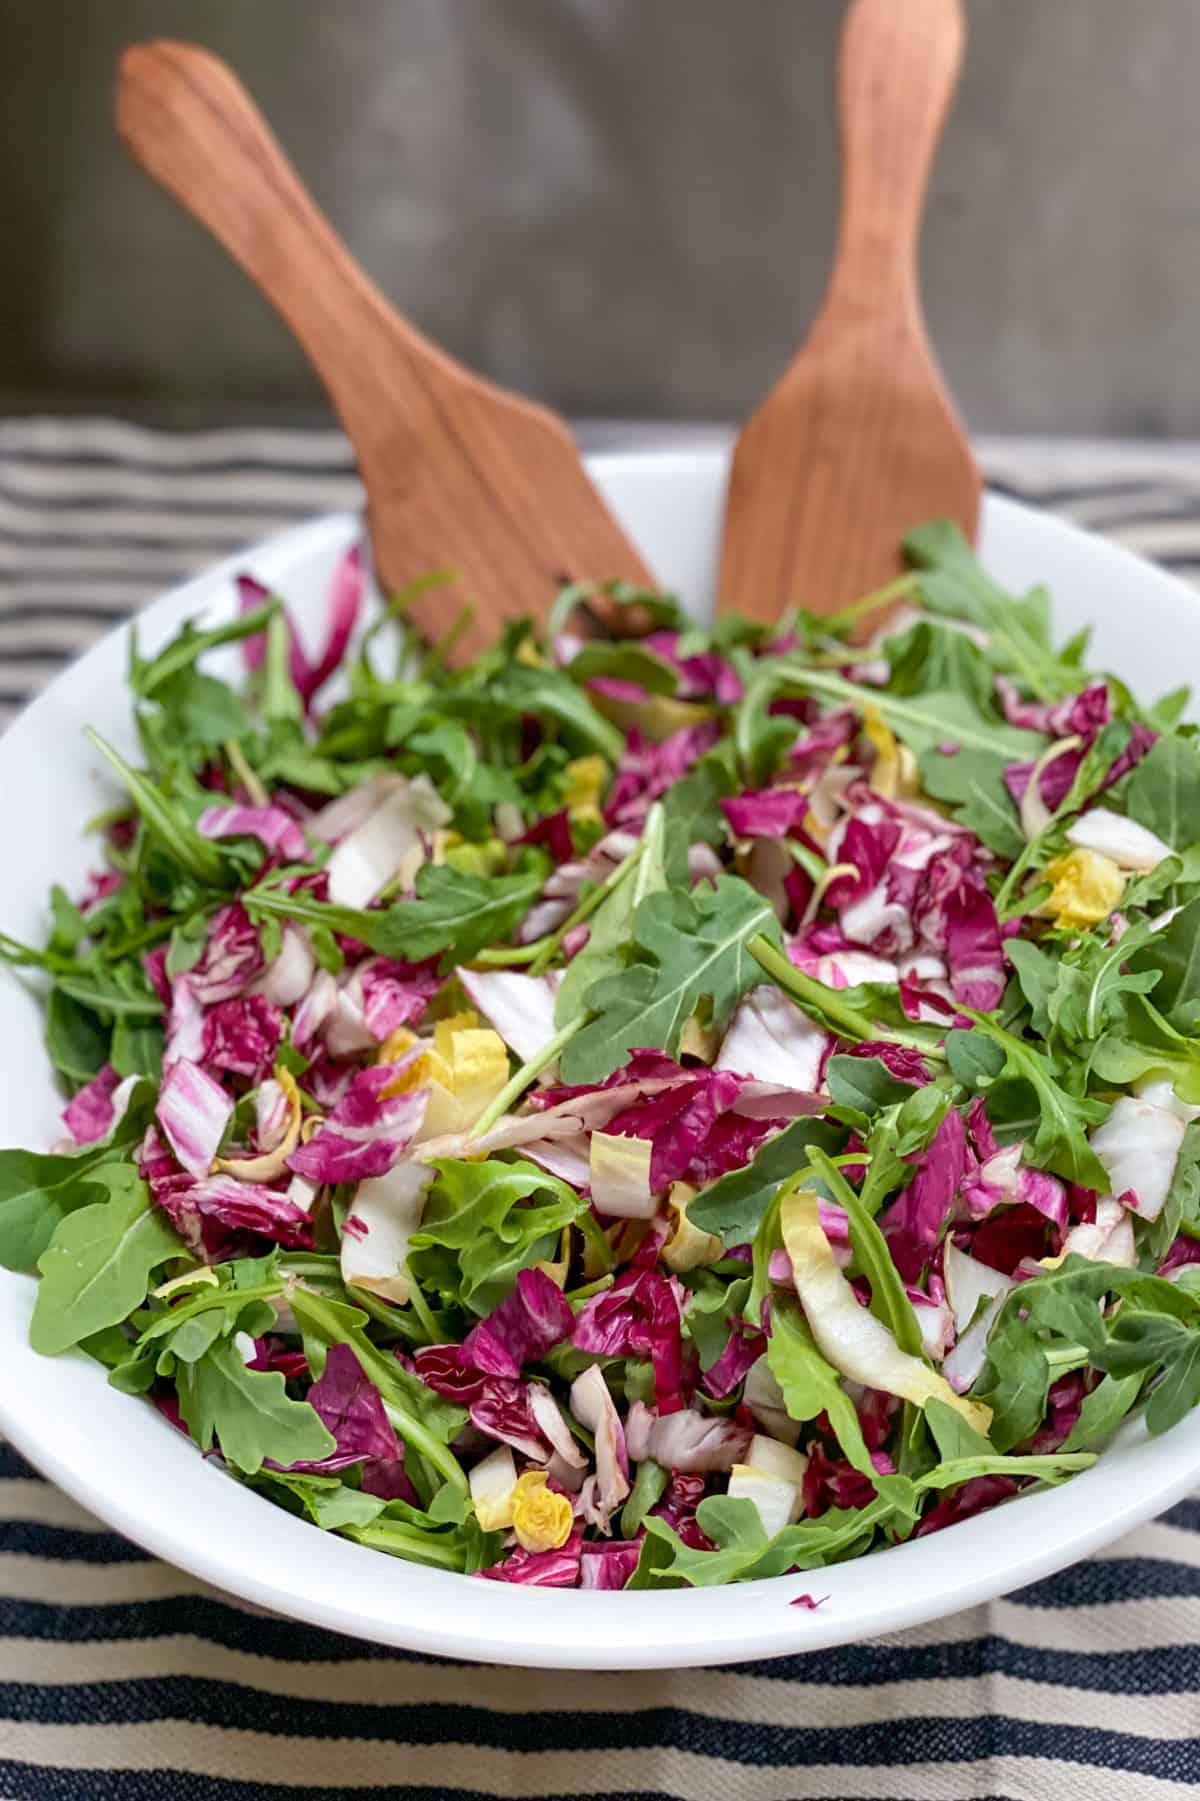 a white bowl on a black and white striped dish towel, filled with arugula, radicchio and endive, with wooden salad spoons in the bowl.